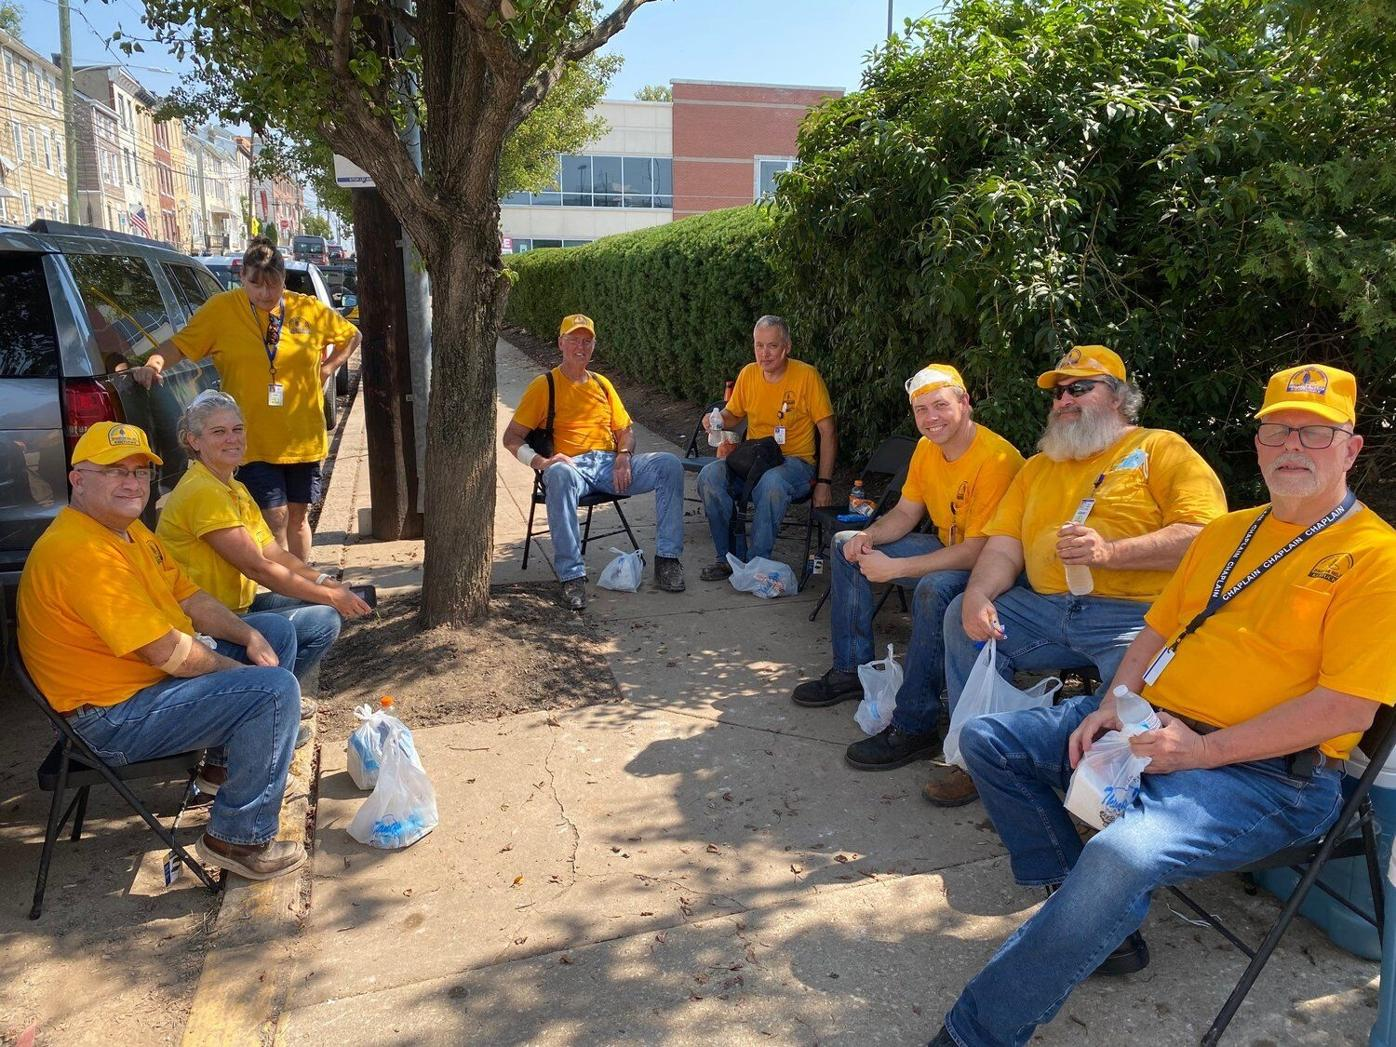 Kentucky Disaster Relief workers shine like gold in Philadelphia